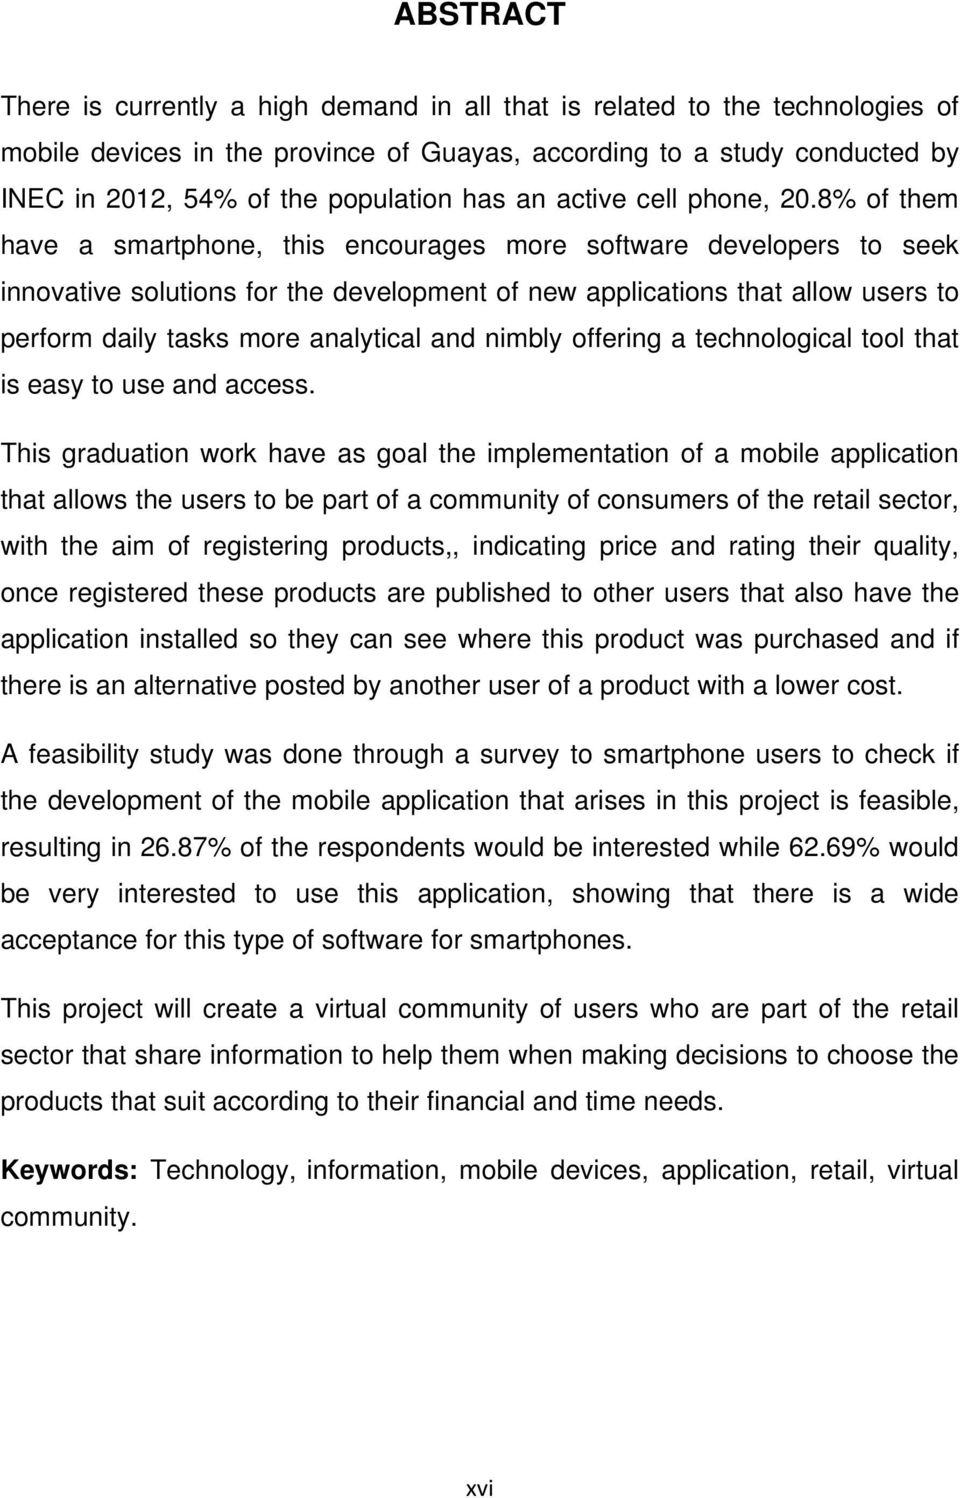 8% of them have a smartphone, this encourages more software developers to seek innovative solutions for the development of new applications that allow users to perform daily tasks more analytical and